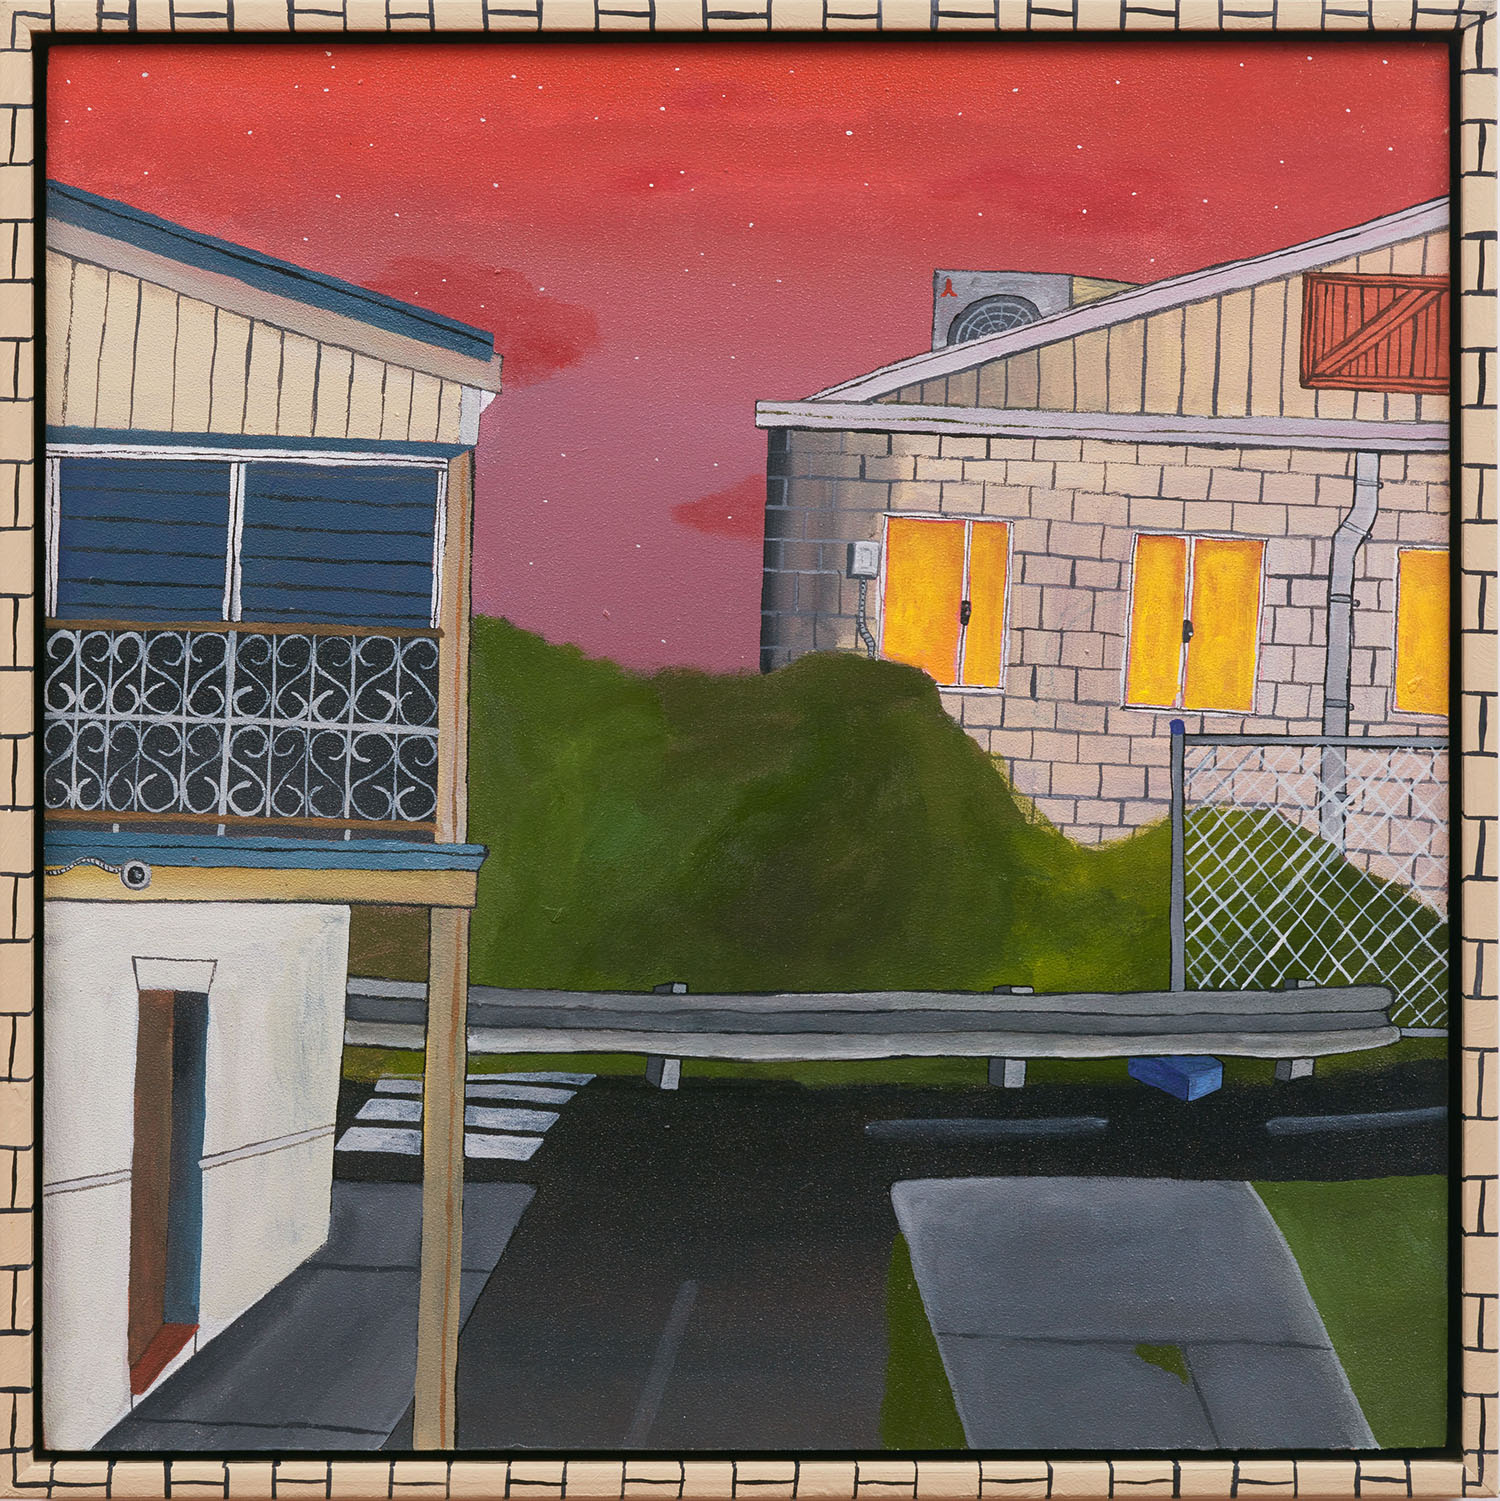 A Quiet Street Inspired by the Ryan's Hotel  2019, acrylic on board with hand painted timber frame, 32 x 32 cm  SOLD